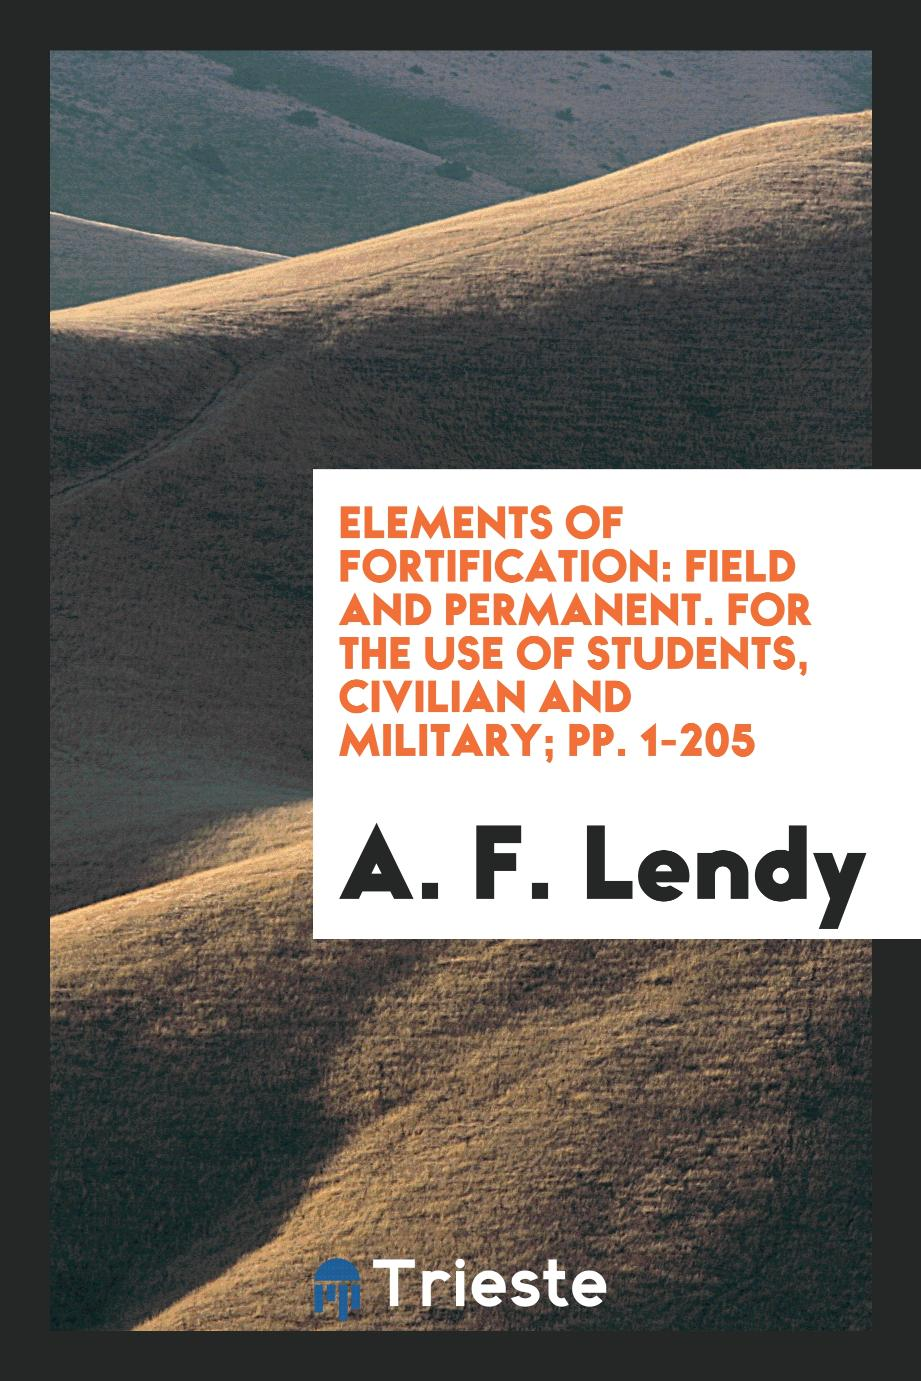 Elements of Fortification: Field and Permanent. For the Use of Students, Civilian and Military; pp. 1-205